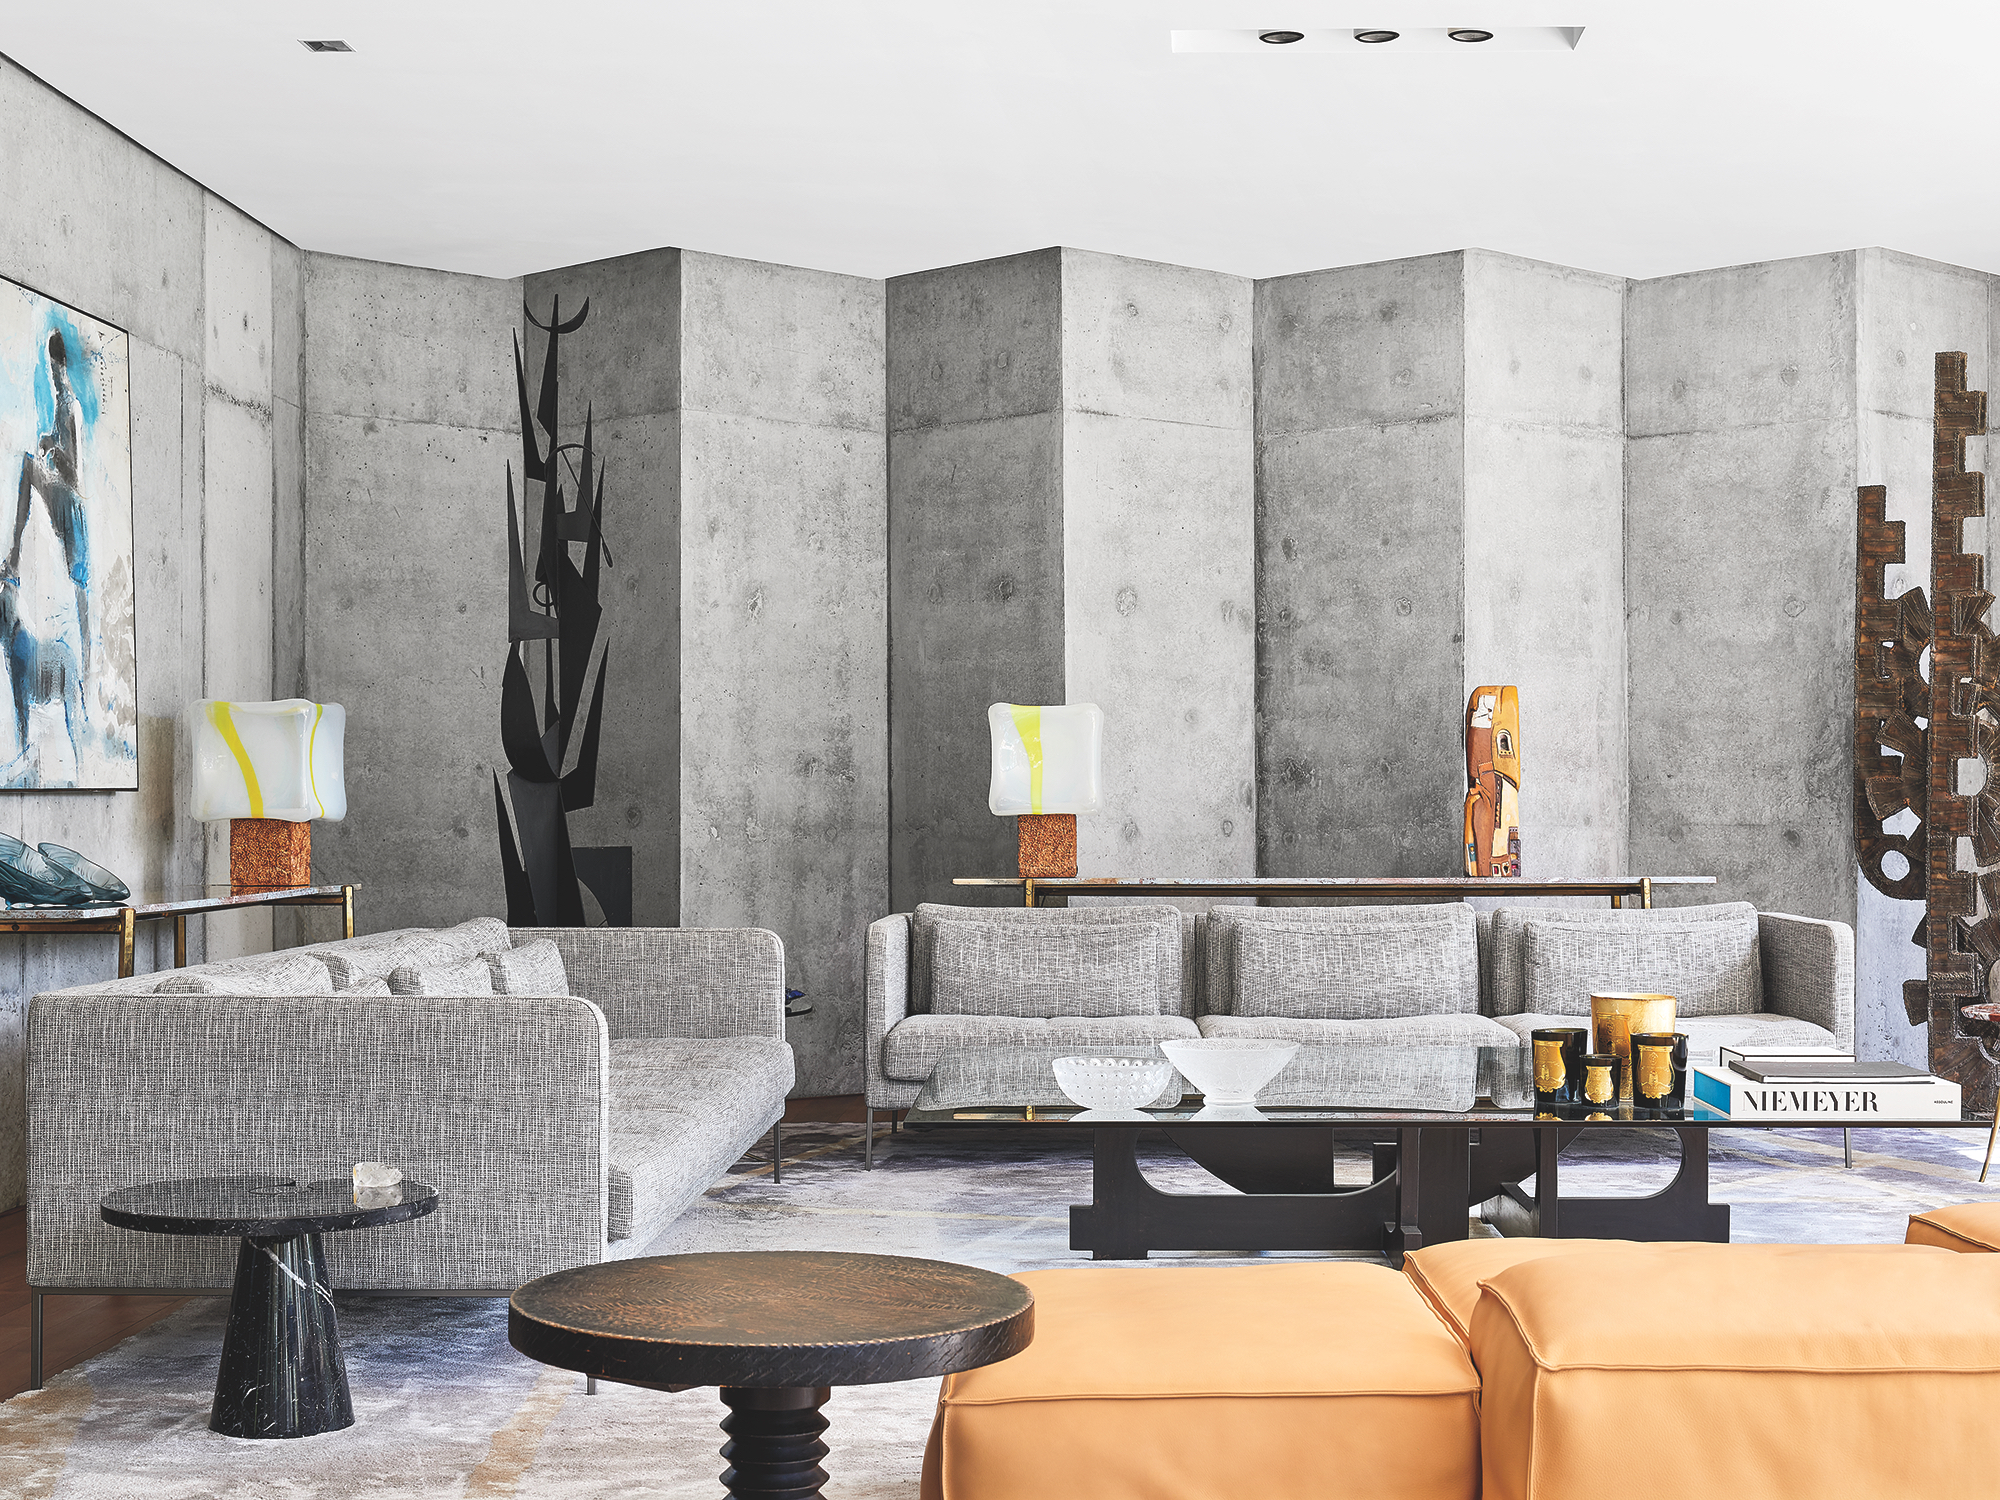 Beton Brut Interieur Maison Mohammed Kabbaj Builds A Brutalist Villa On The Site Of His